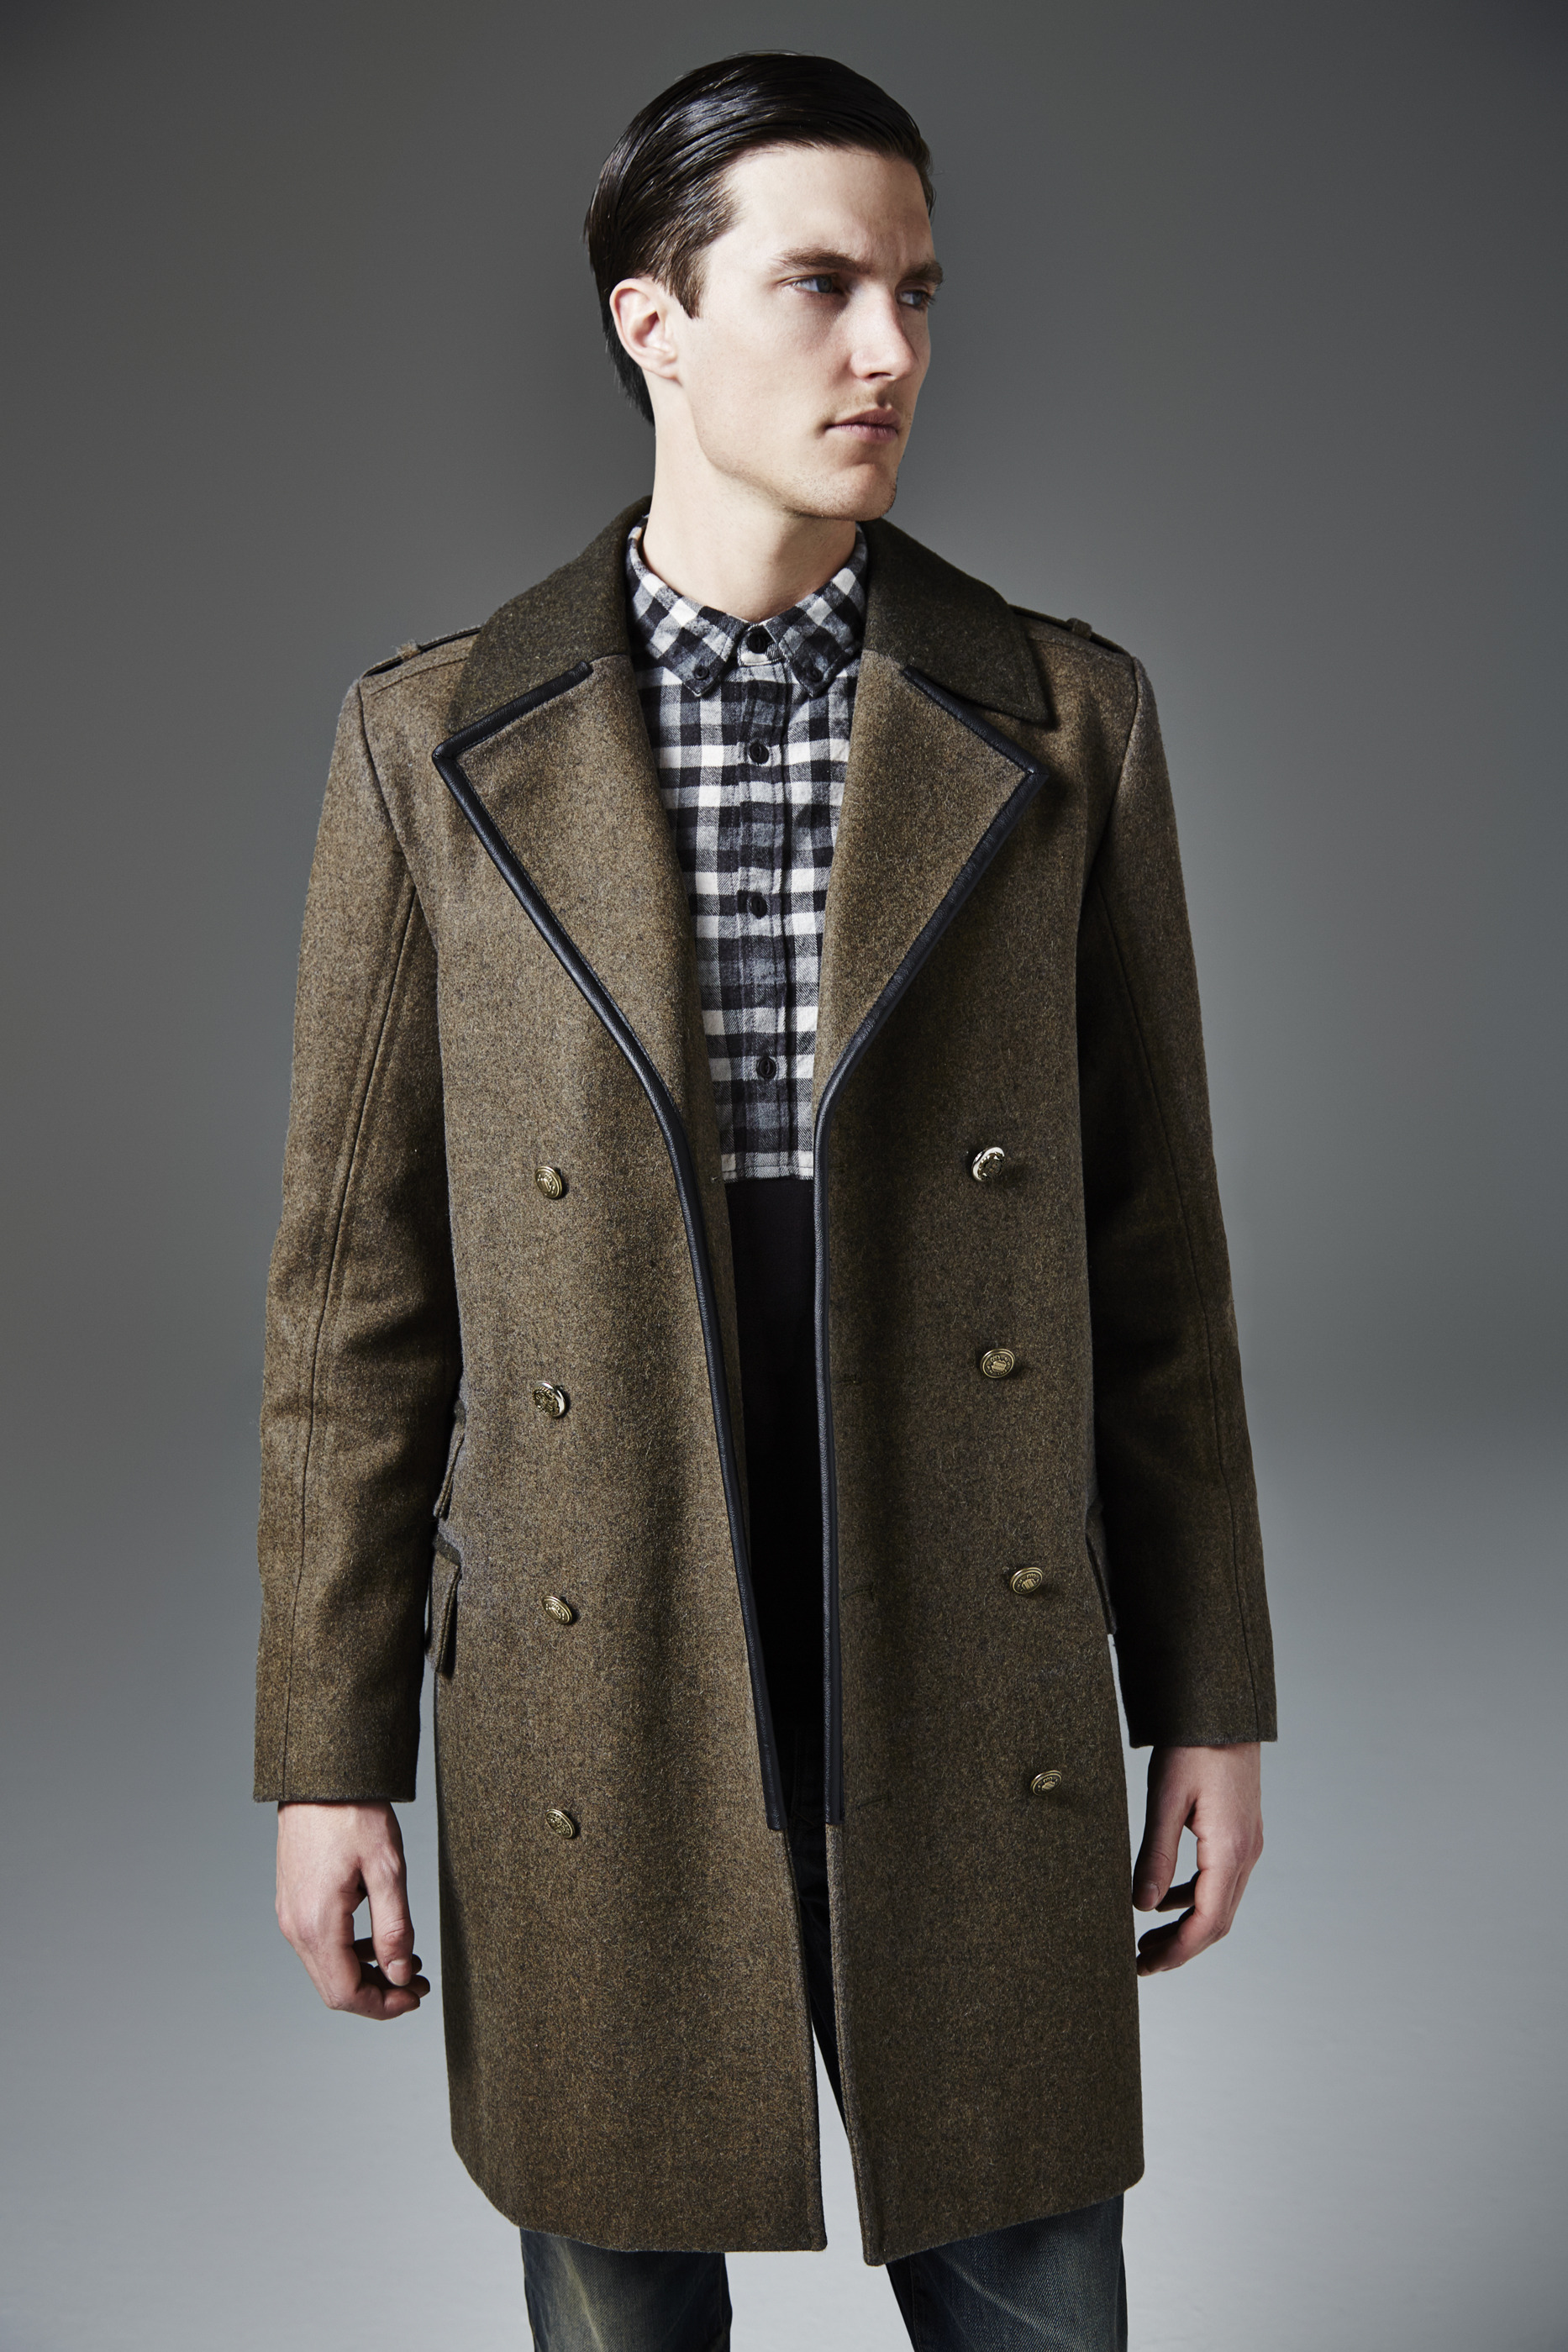 River Island Menswear: AW13 Collection